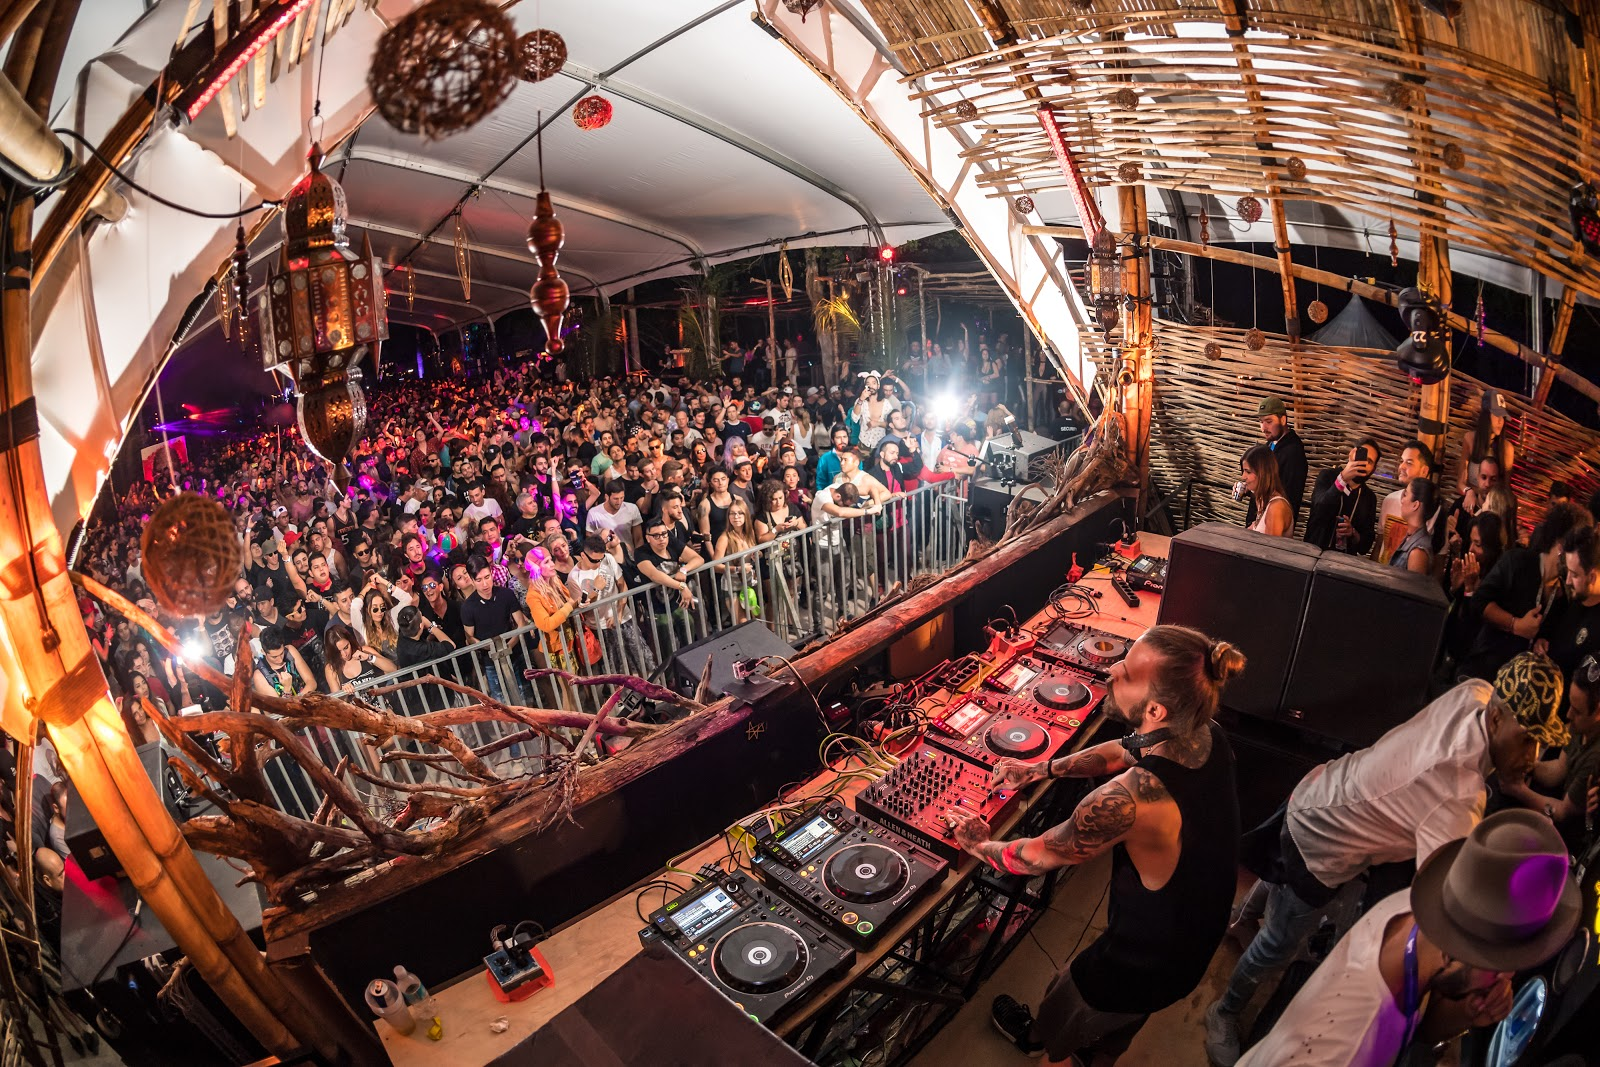 The BPM Festival Announces Final Lineup For January 2020 Costa Rica Debut